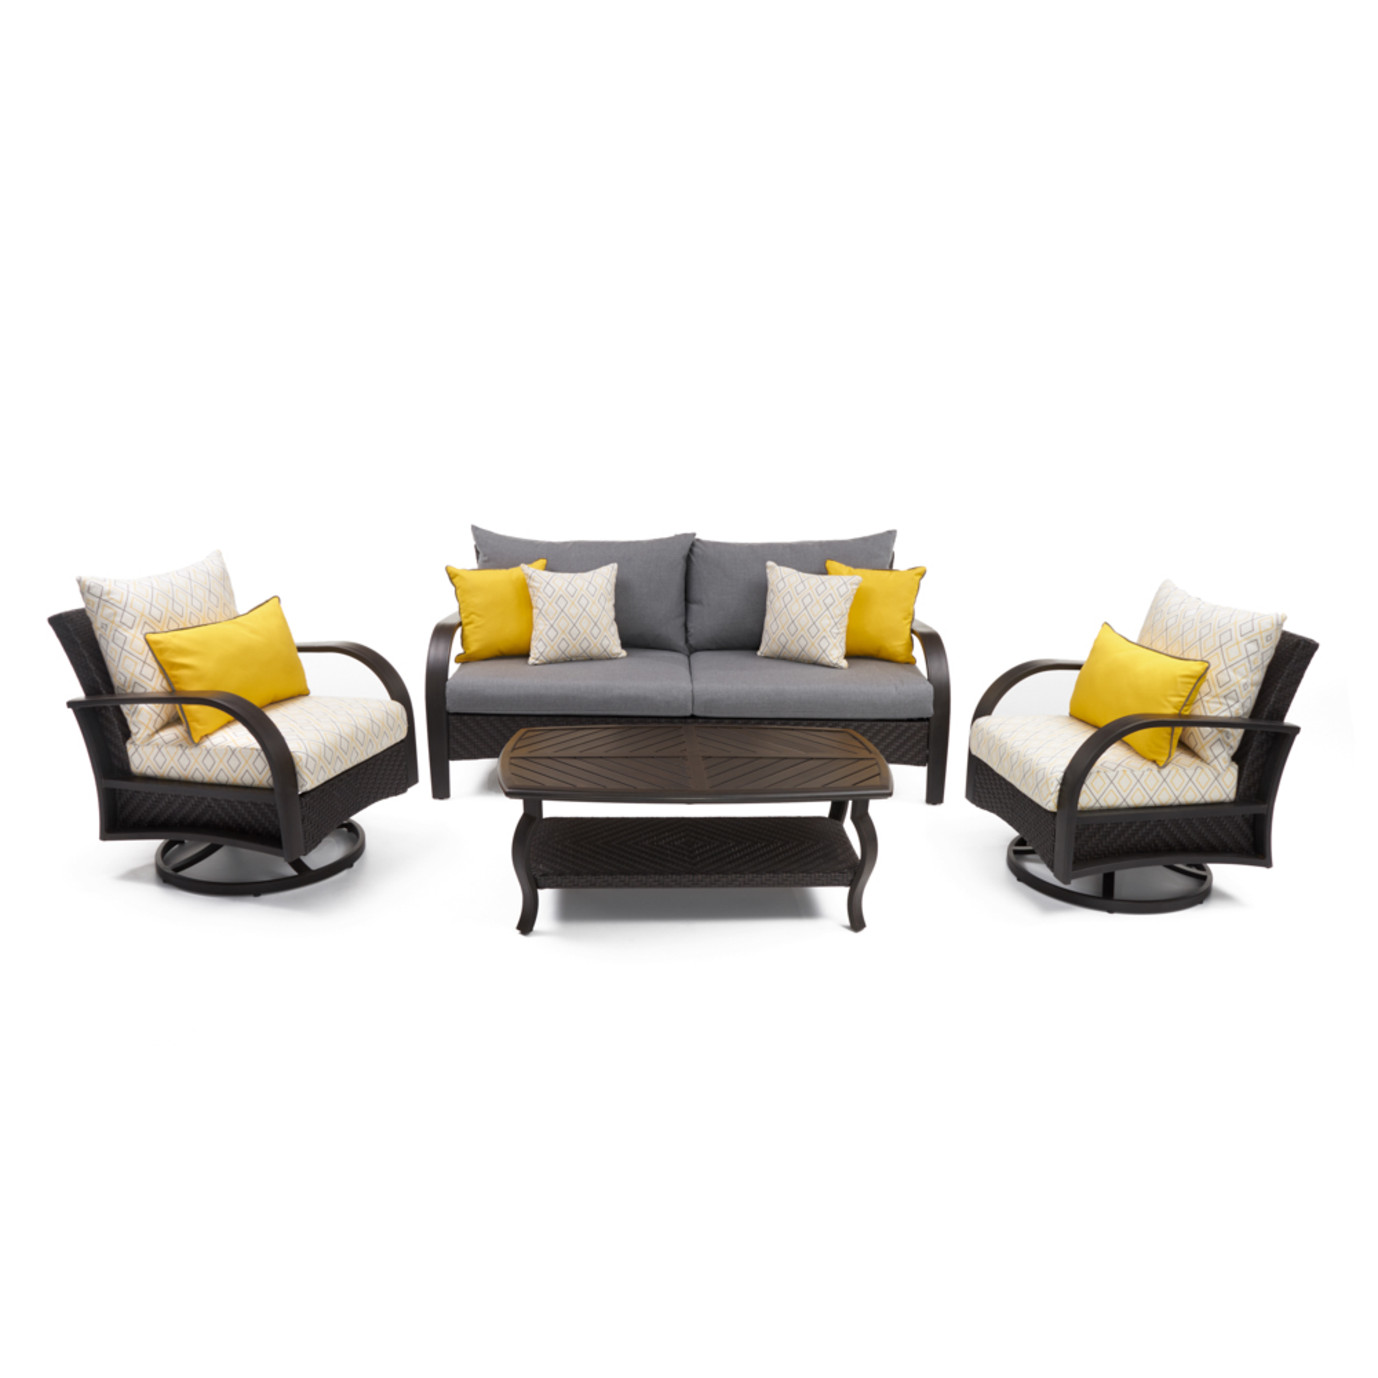 Barcelo™ Deluxe 4pc Motion Club & Sofa Set - Sunflower Yellow